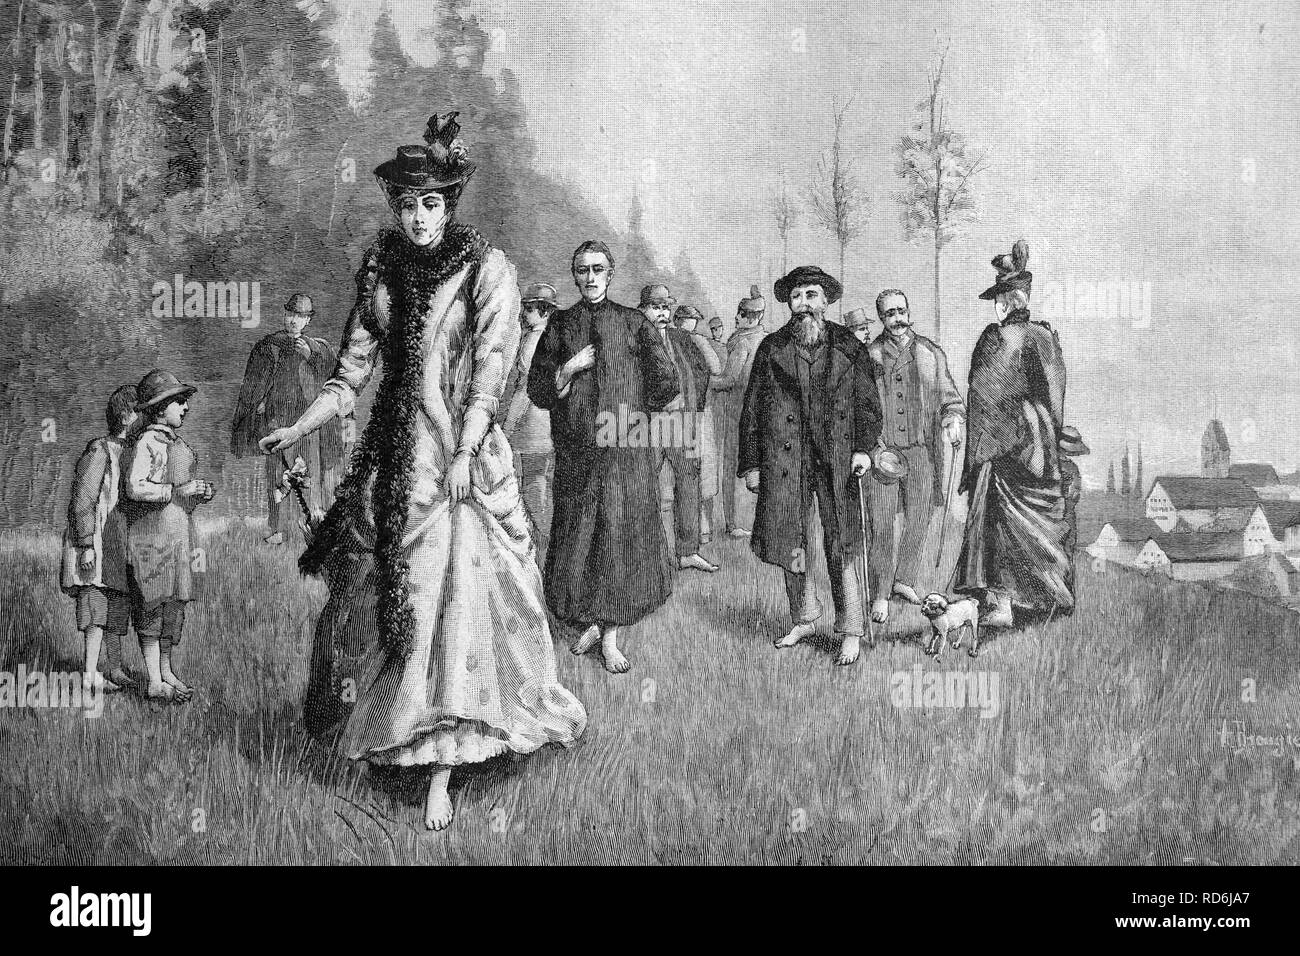 Kneipp cure, people walking barefoot on damp grass in Woerishofen, Bavaria, Germany, historical picture, about 1893 Stock Photo